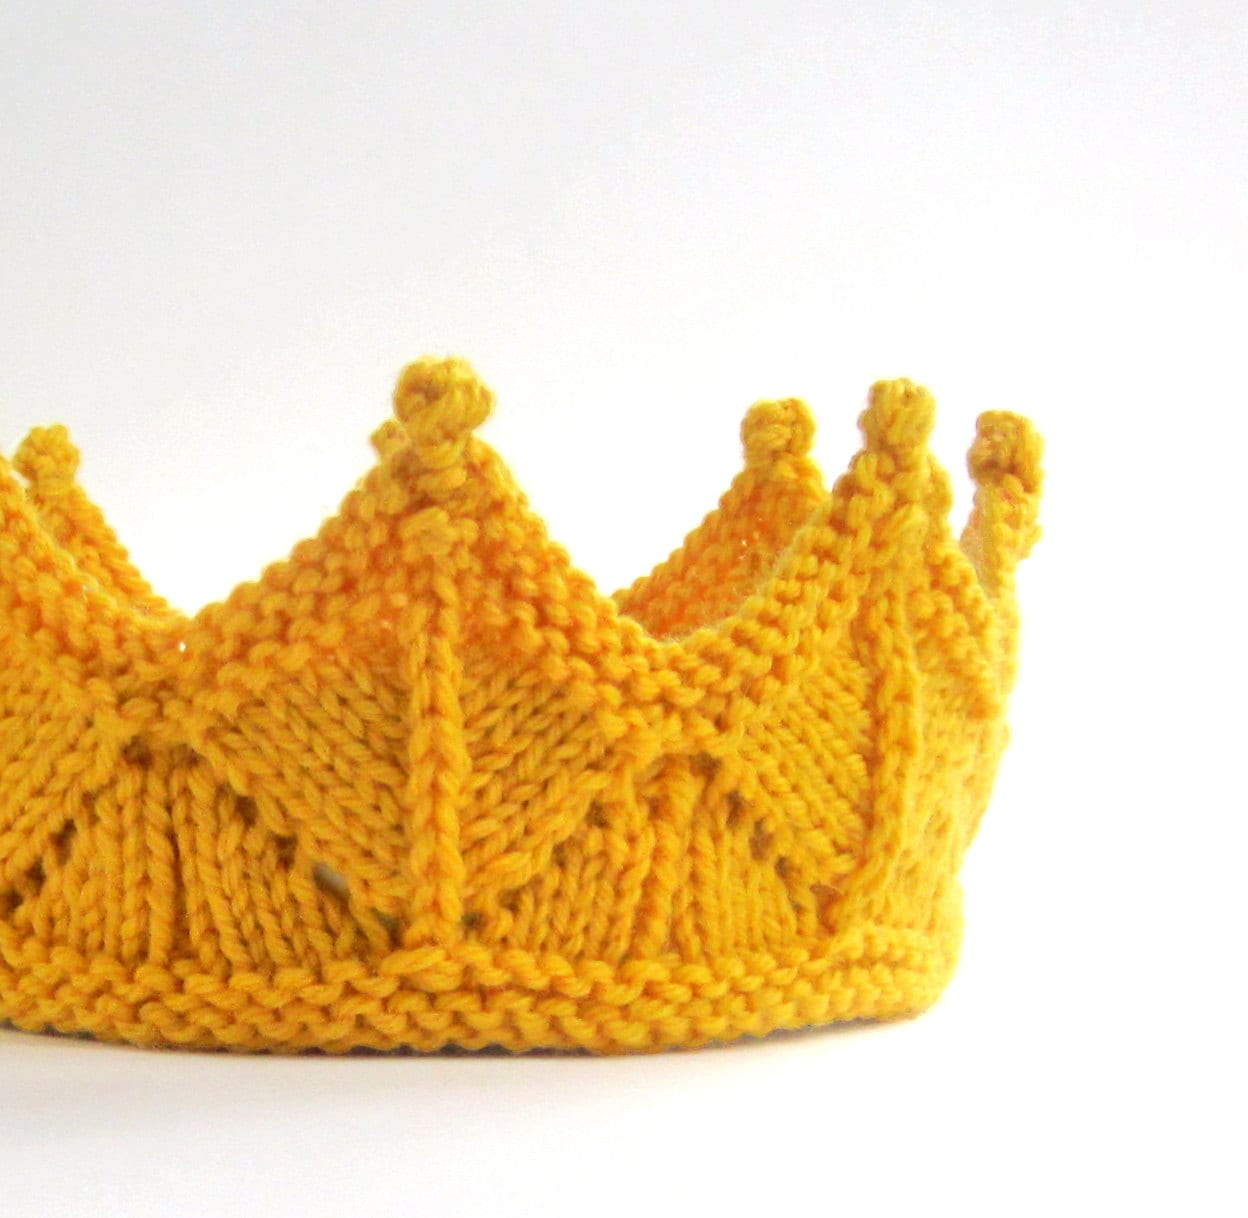 Golden Yellow Lace Knit Crown Headband for Dress Up and